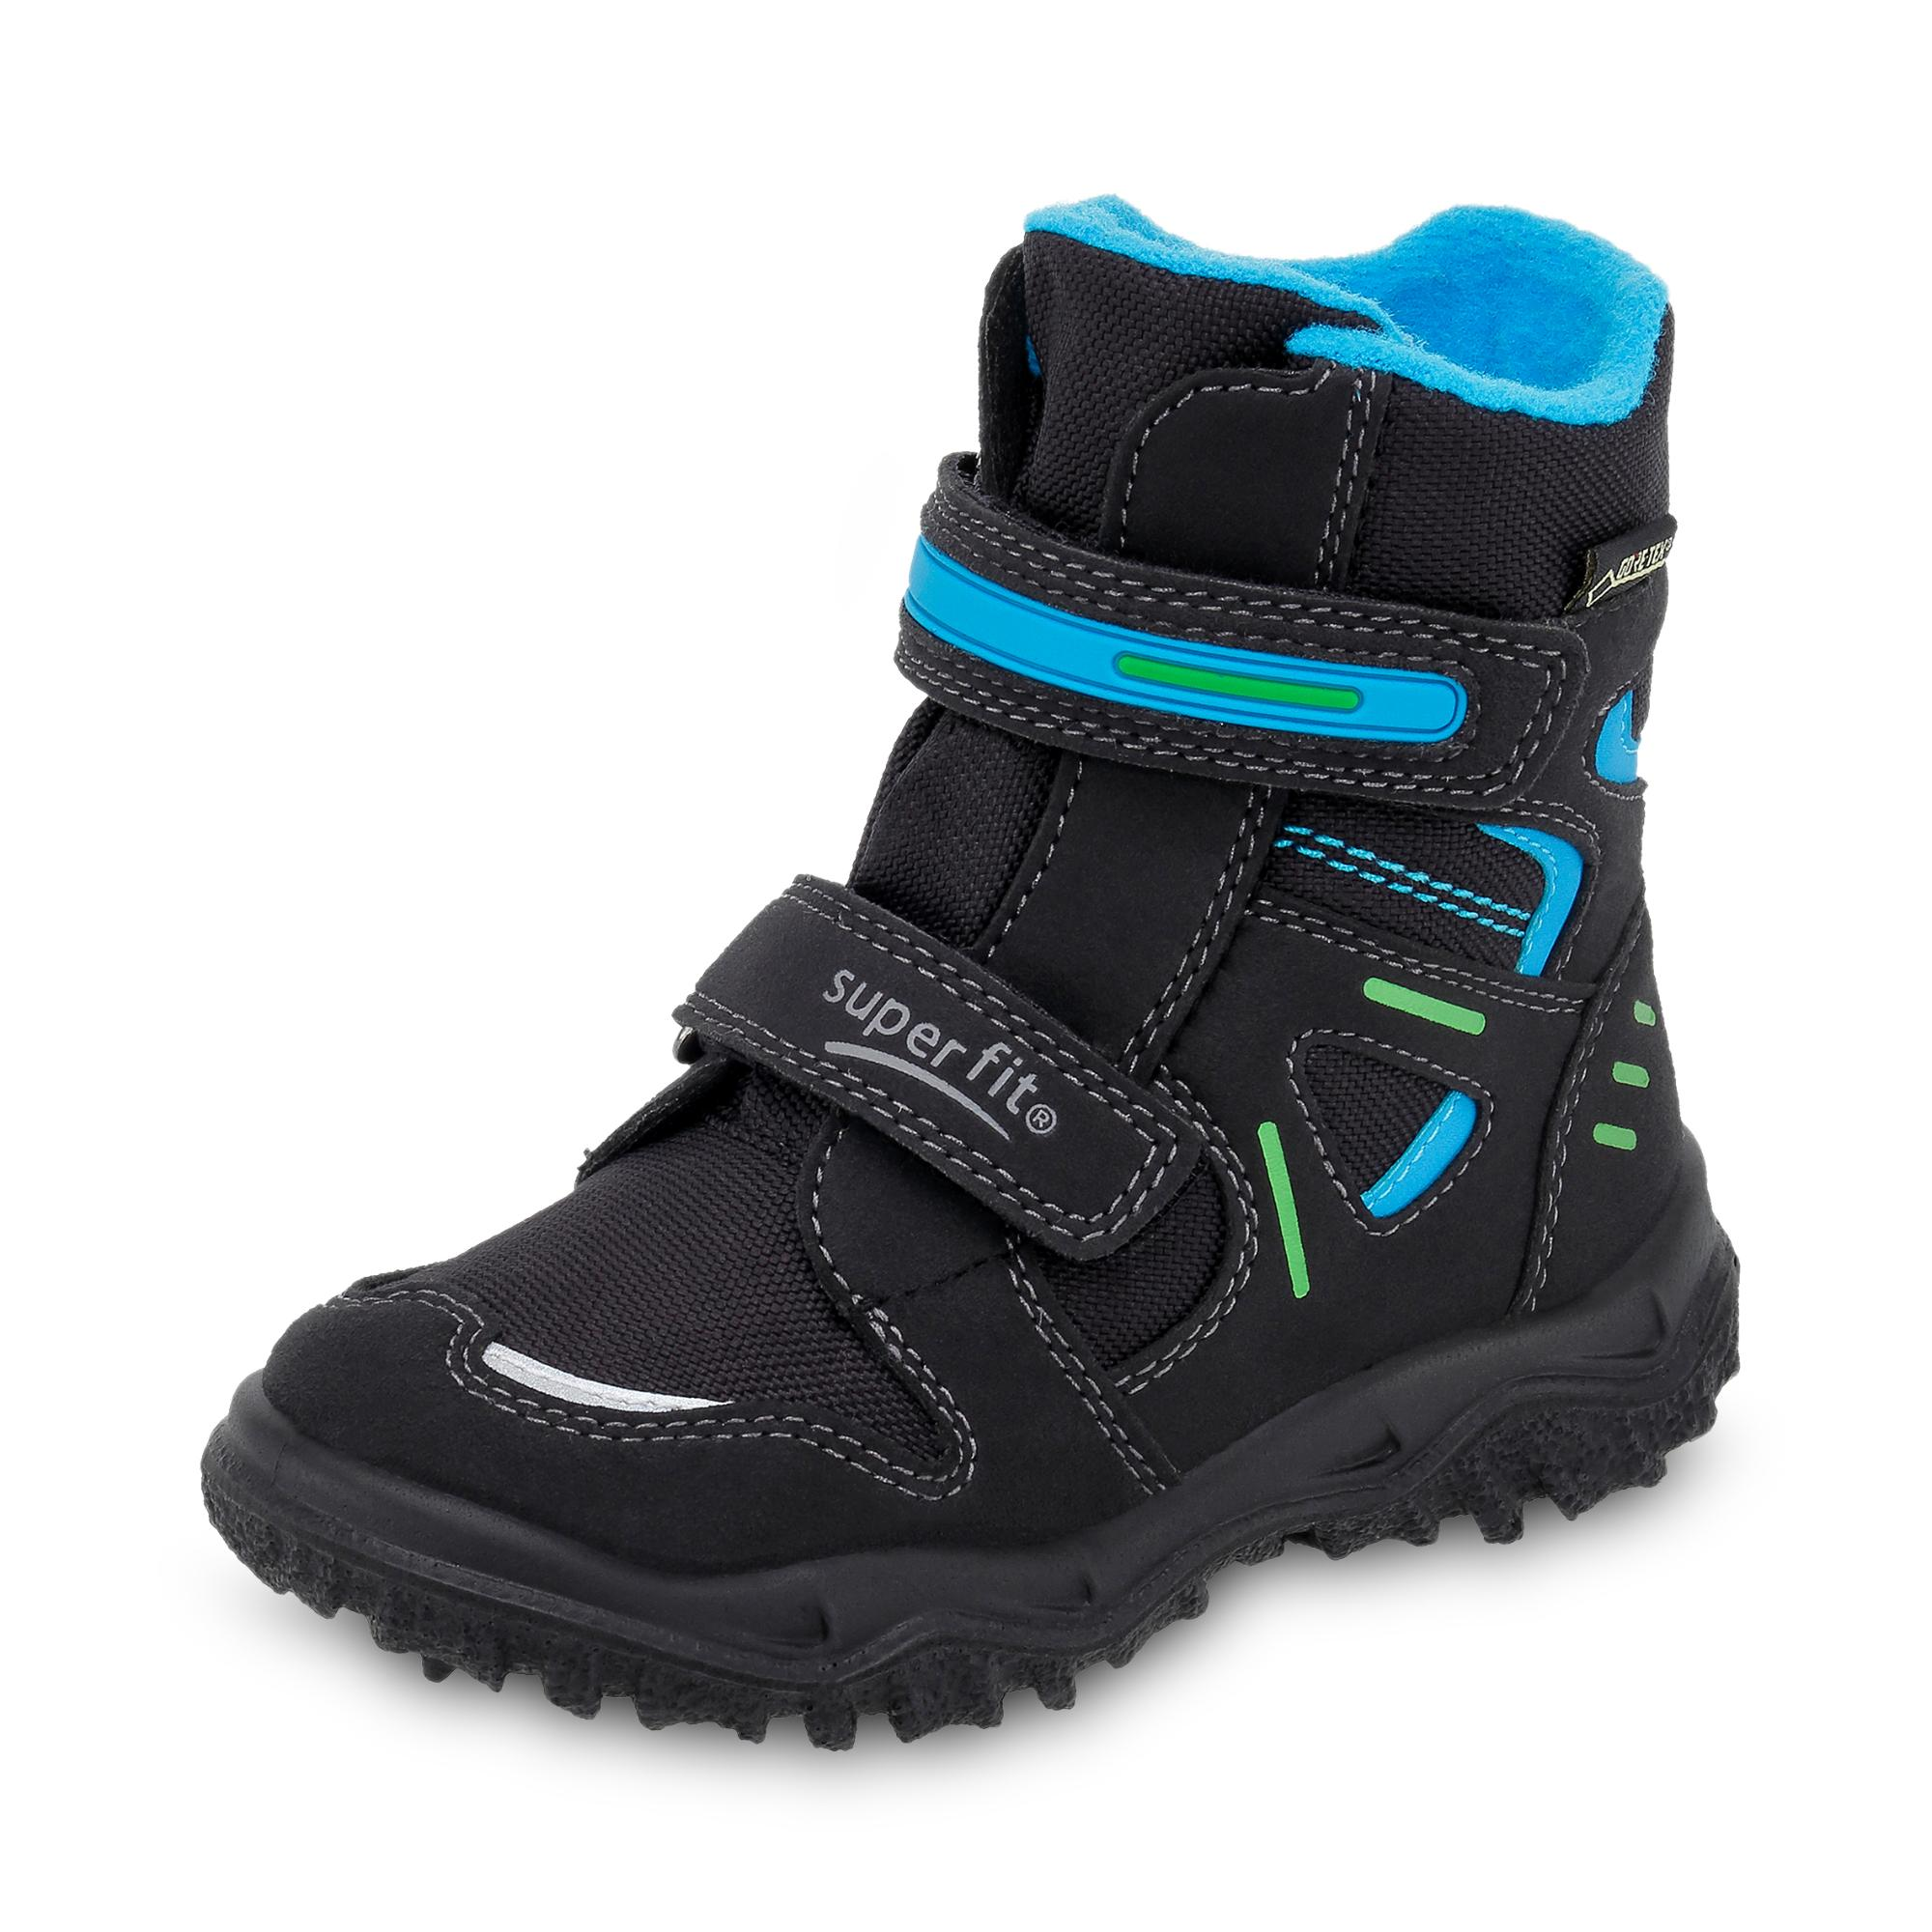 superfit gore tex husky kinder jungen winterstiefel boots lederimitat schuhe ebay. Black Bedroom Furniture Sets. Home Design Ideas